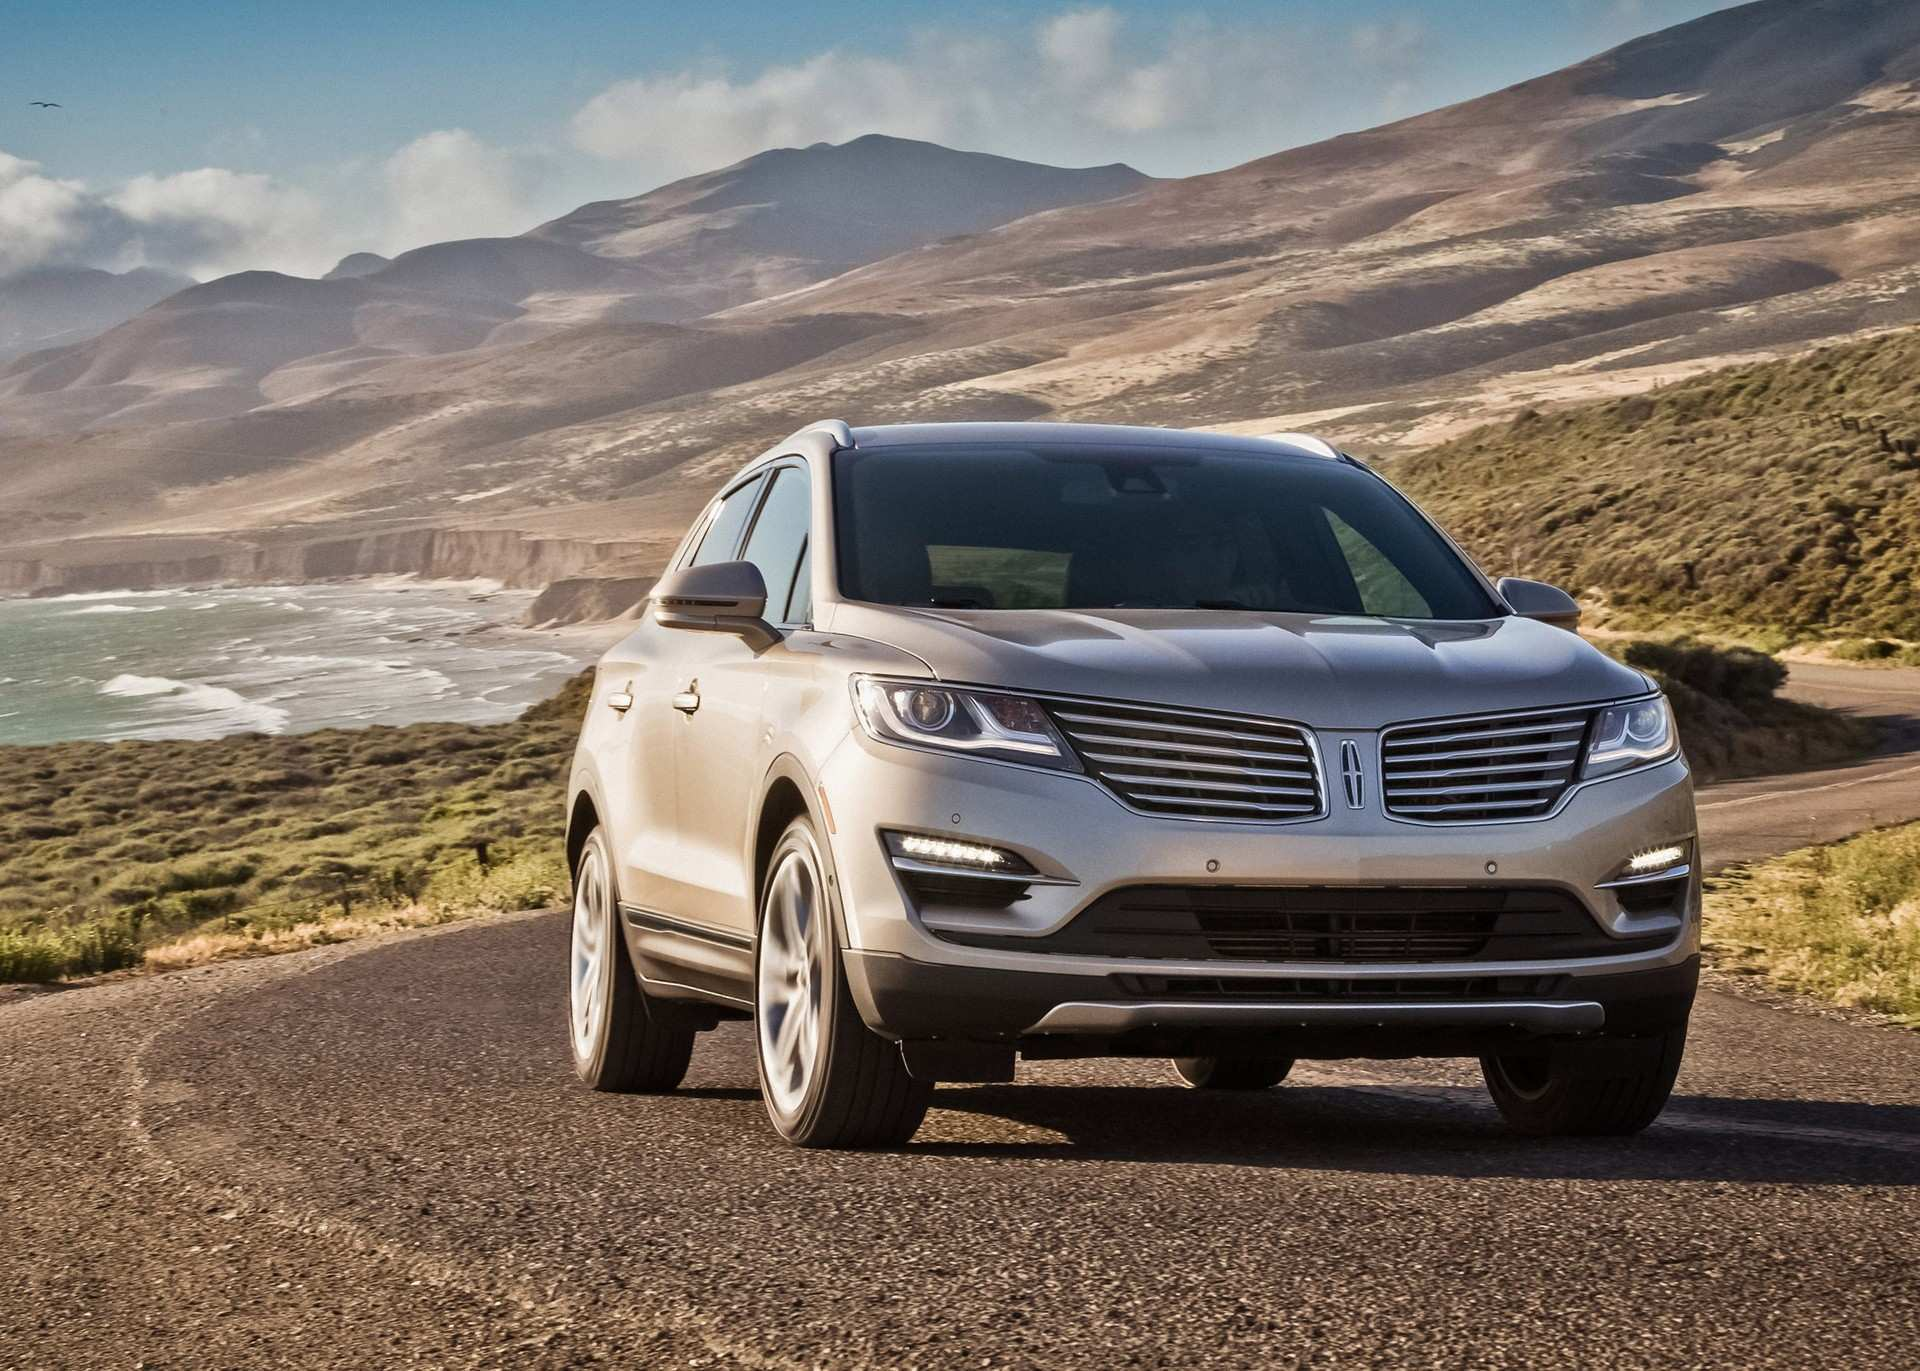 67 The Best 2020 Lincoln MKS Spy Photos Price And Review